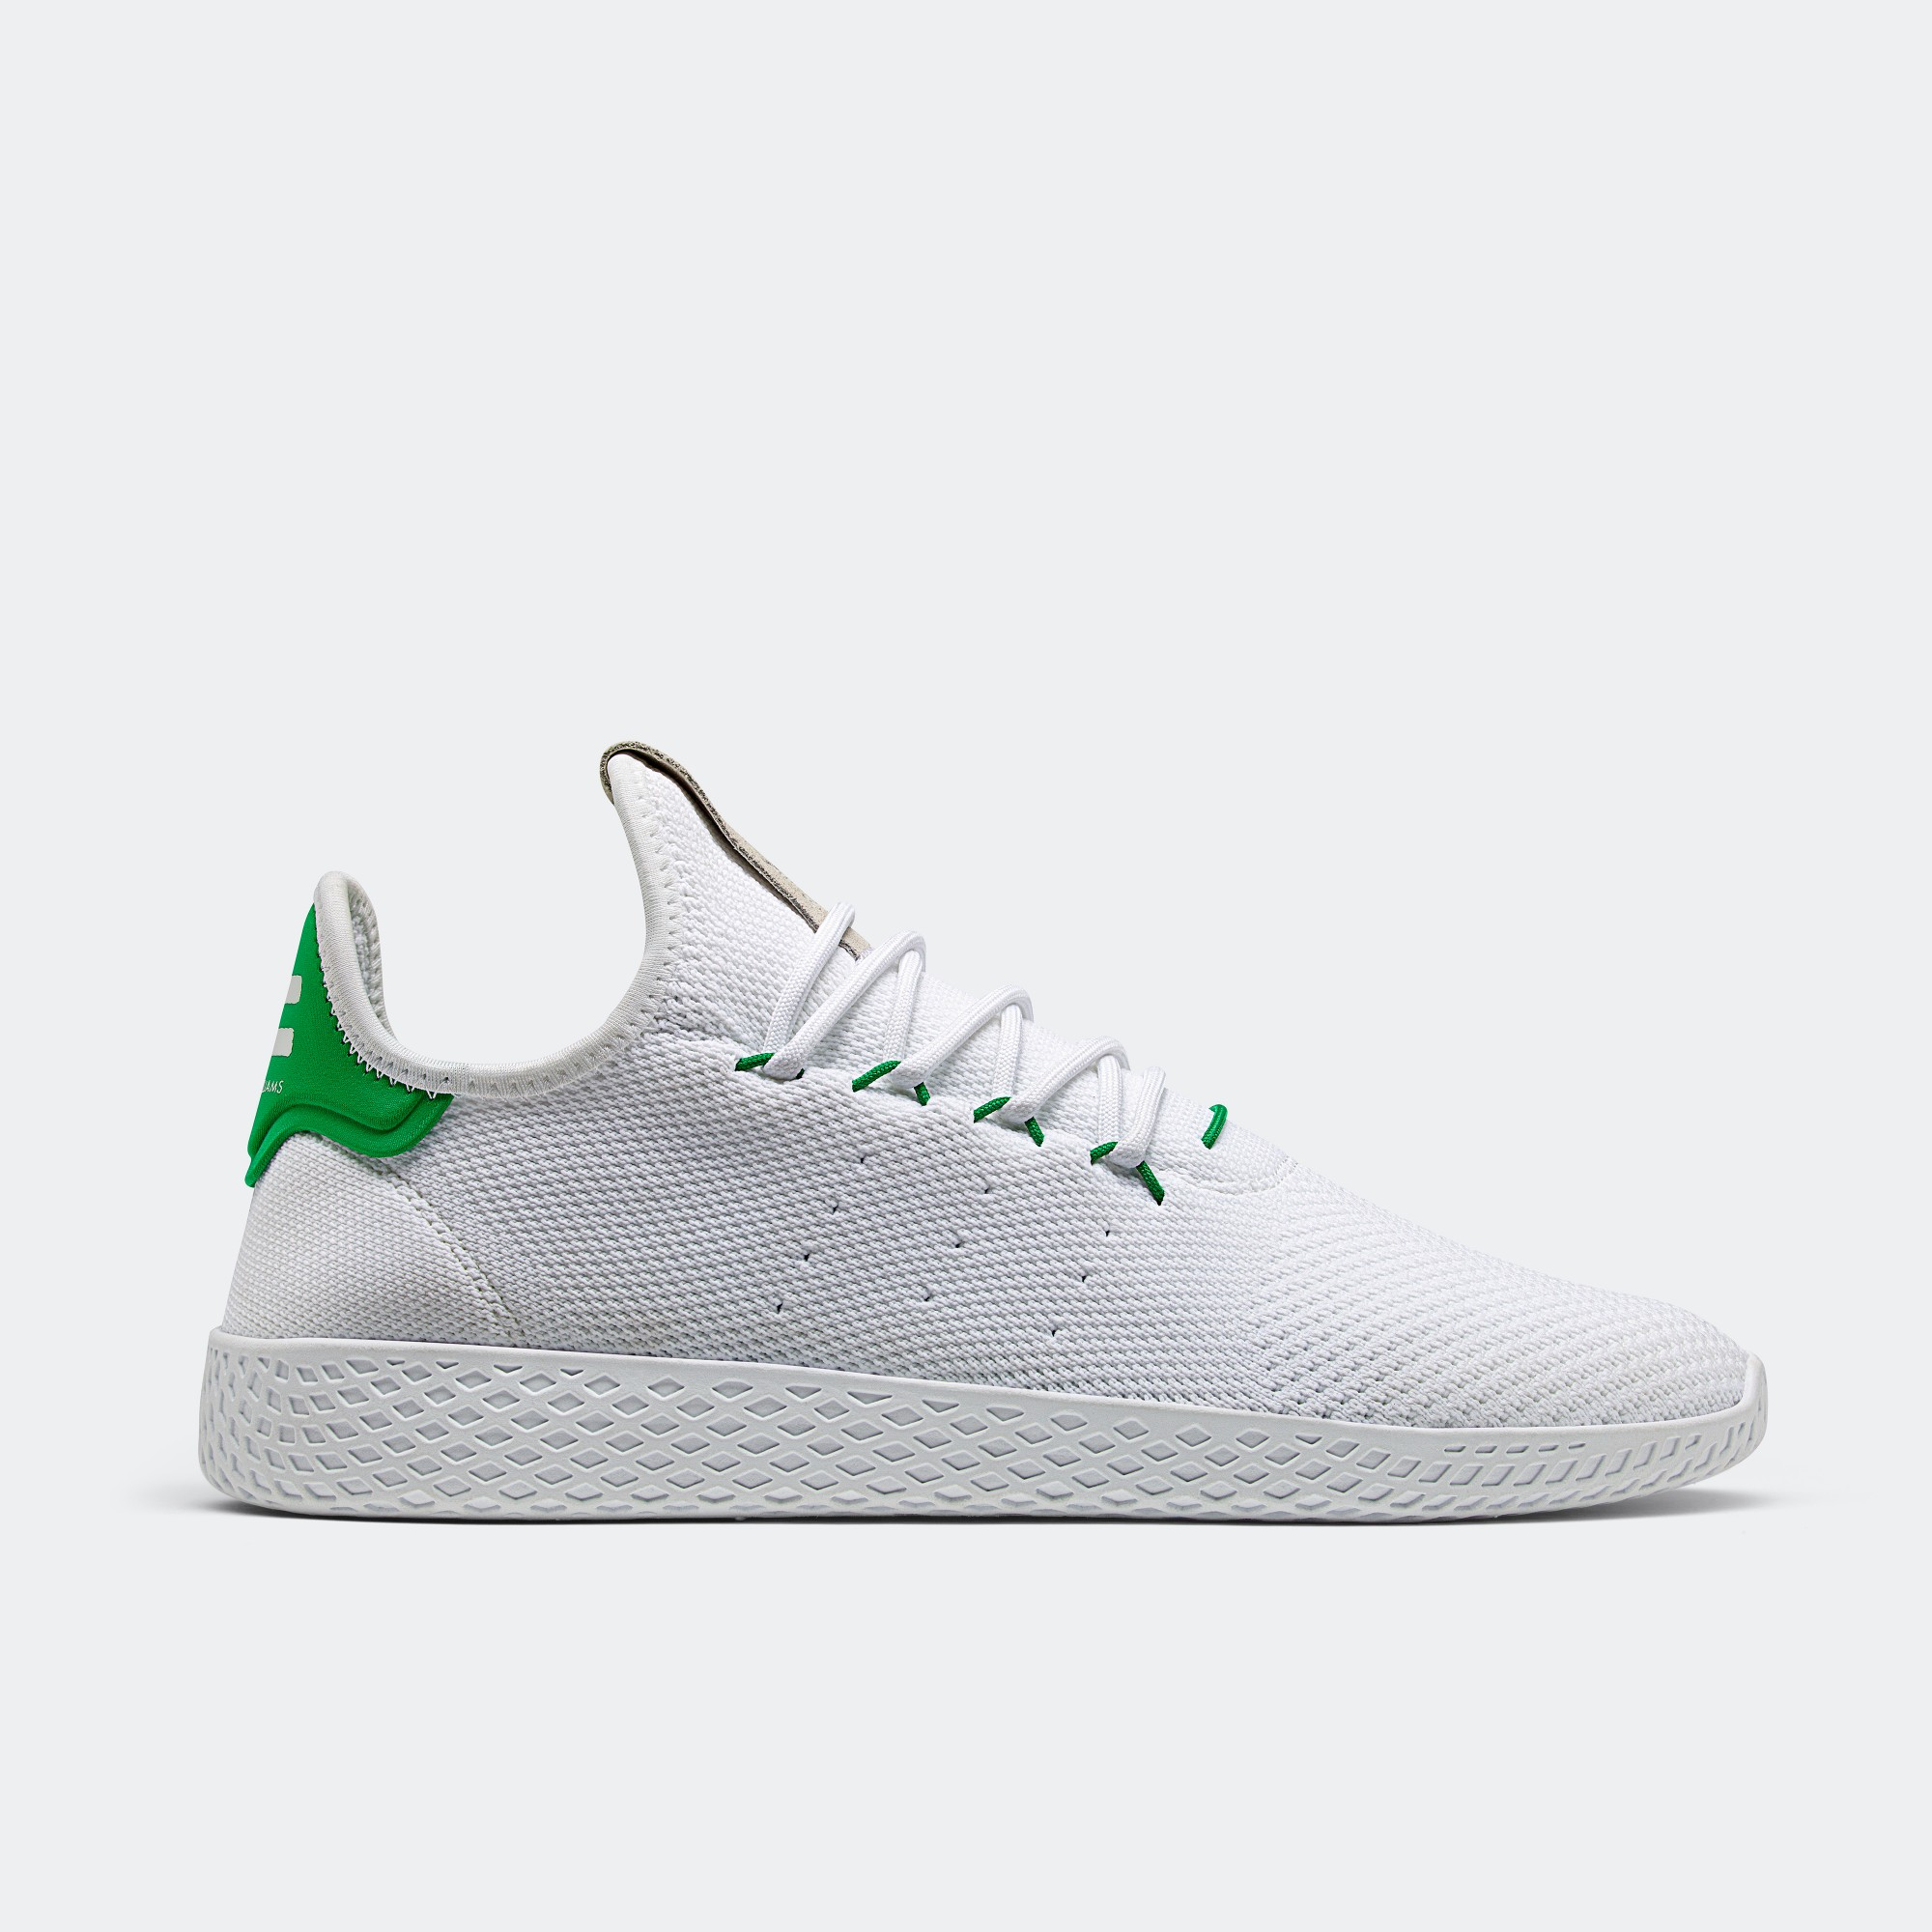 pharell william shoes- OFF 57% - www